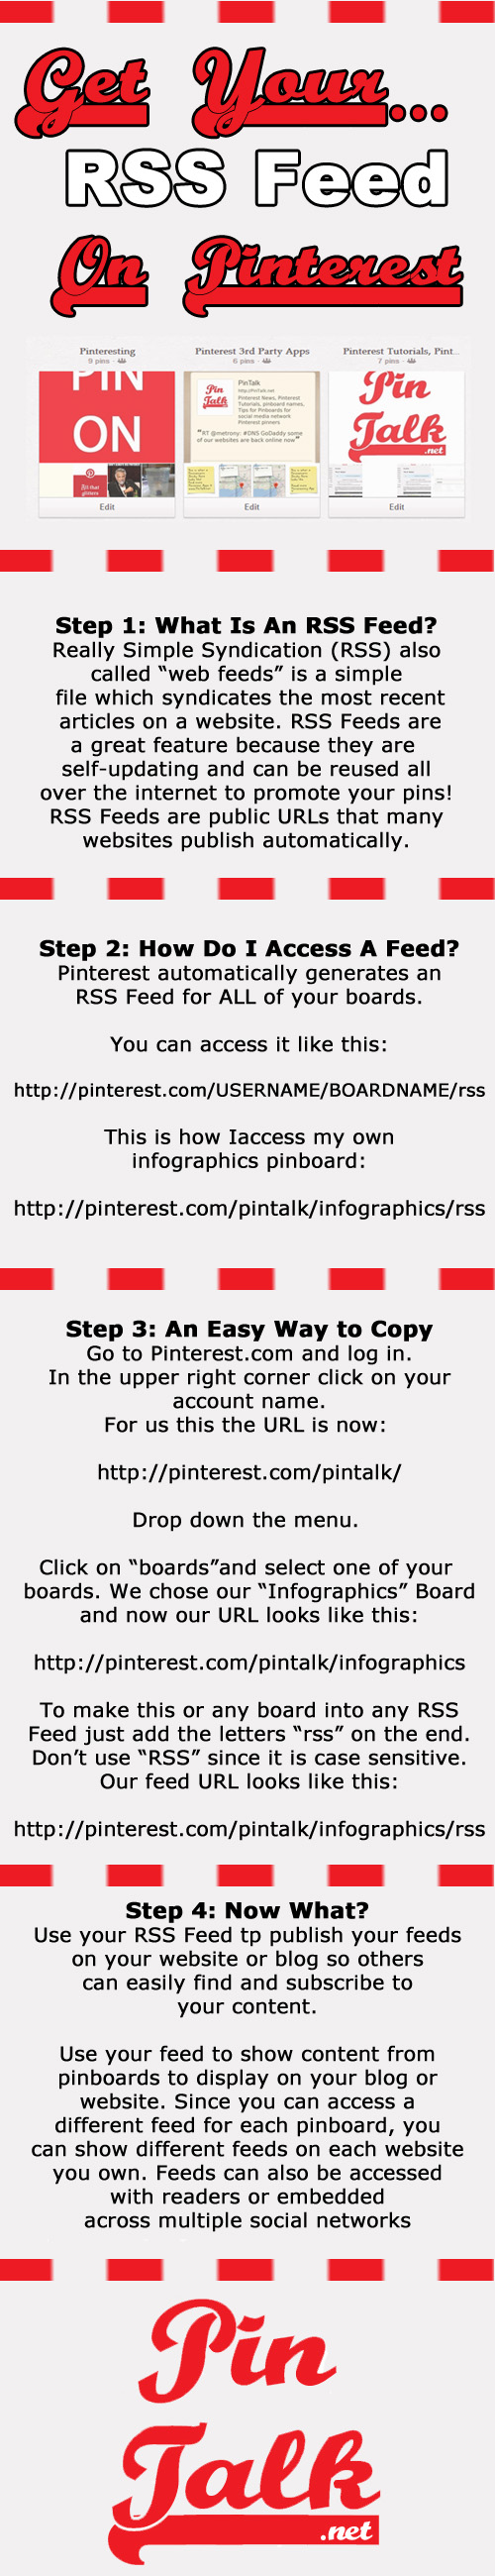 Pinterest RSS Feed Infographic